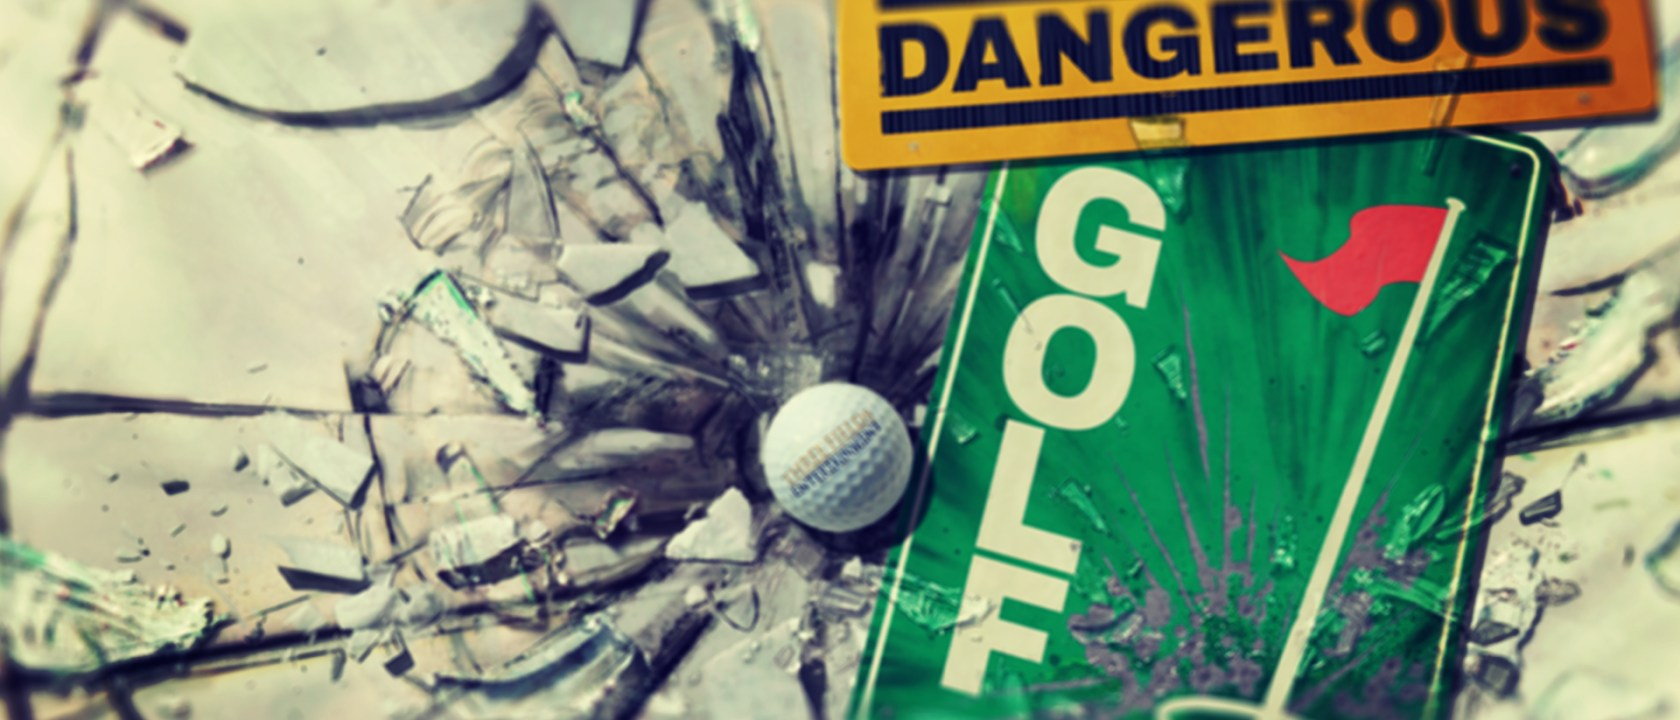 Permalink to: Dangerous Golf